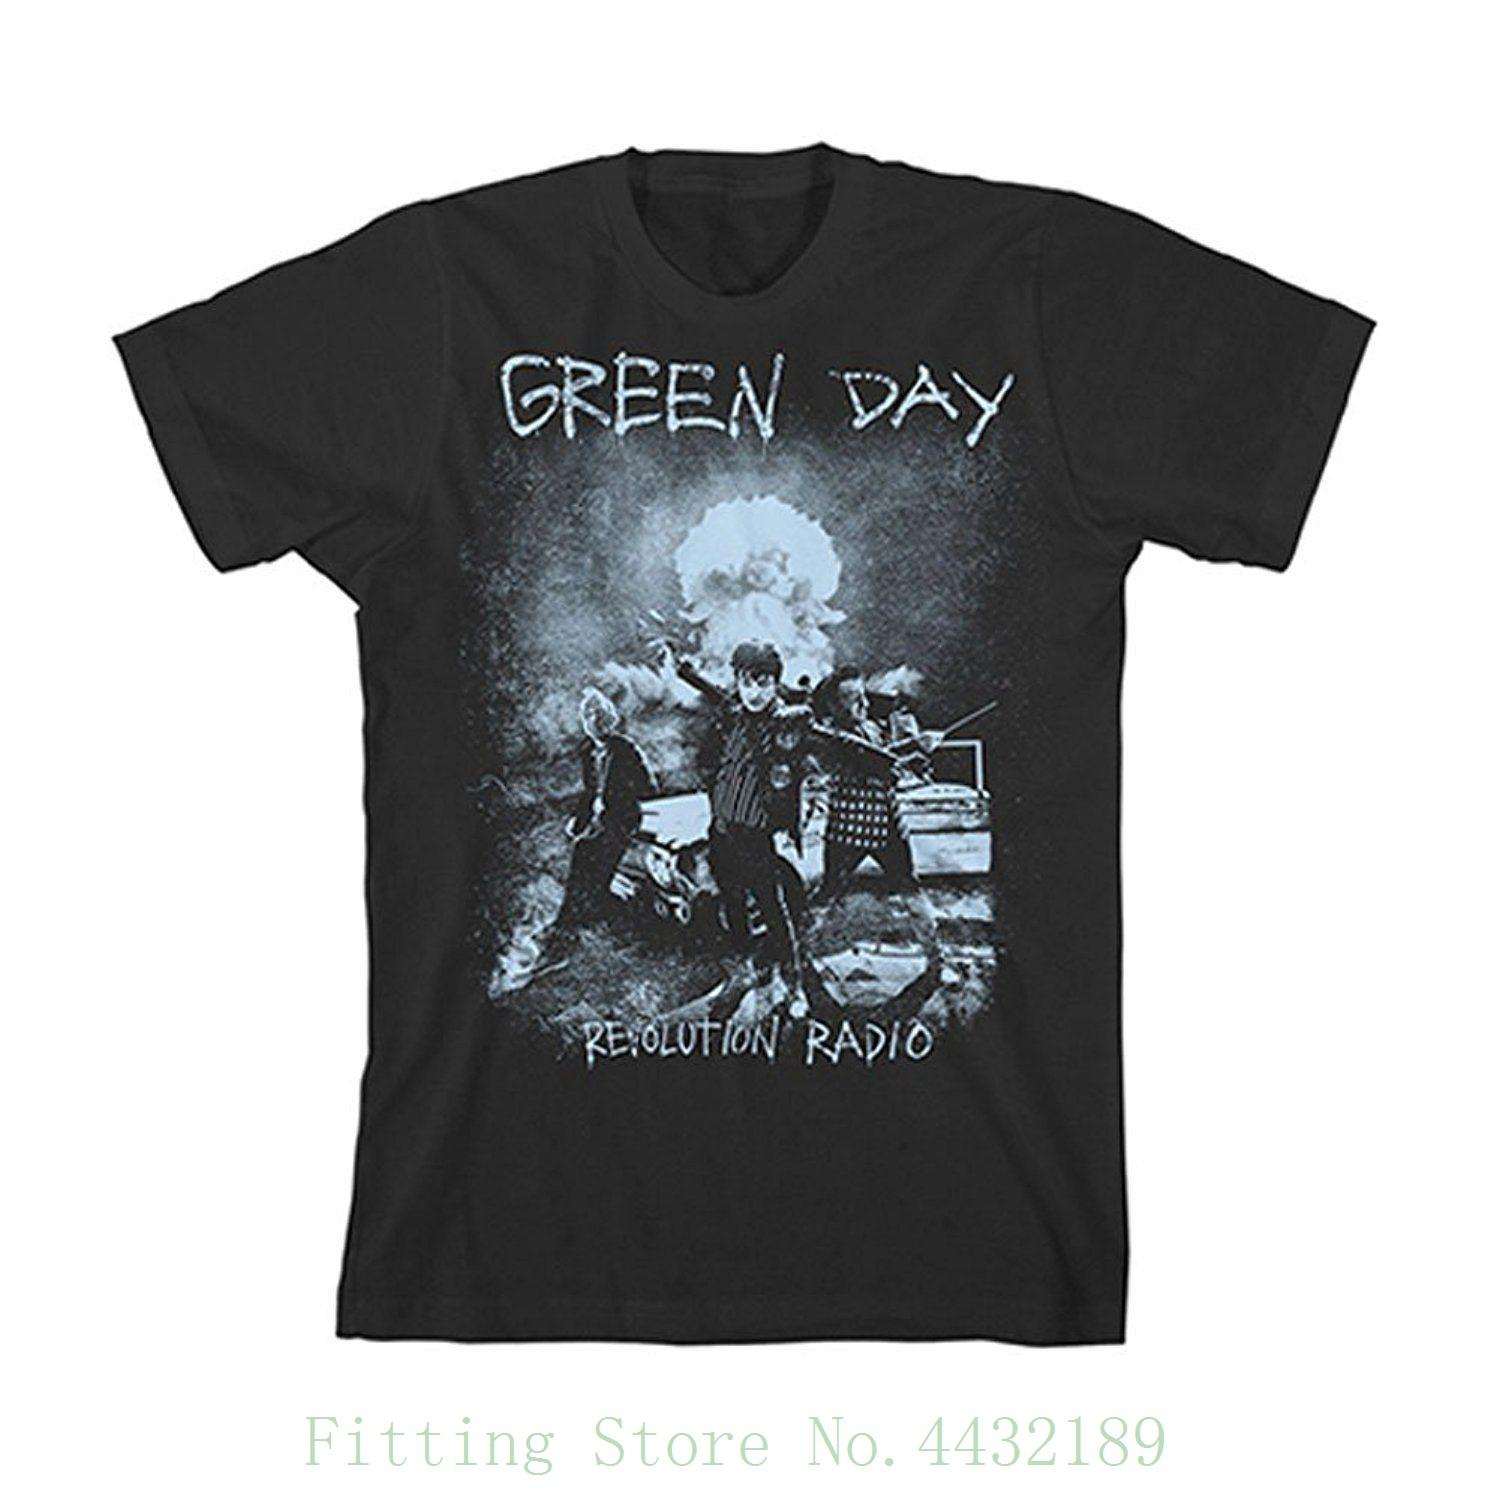 527ca4eda0d Authentic Green Day Nuke T Shirt S 2xl New Newest 2018 Fashion Stranger  Things T Shirt Men Online with  30.94 Piece on Aaa888tshirts s Store